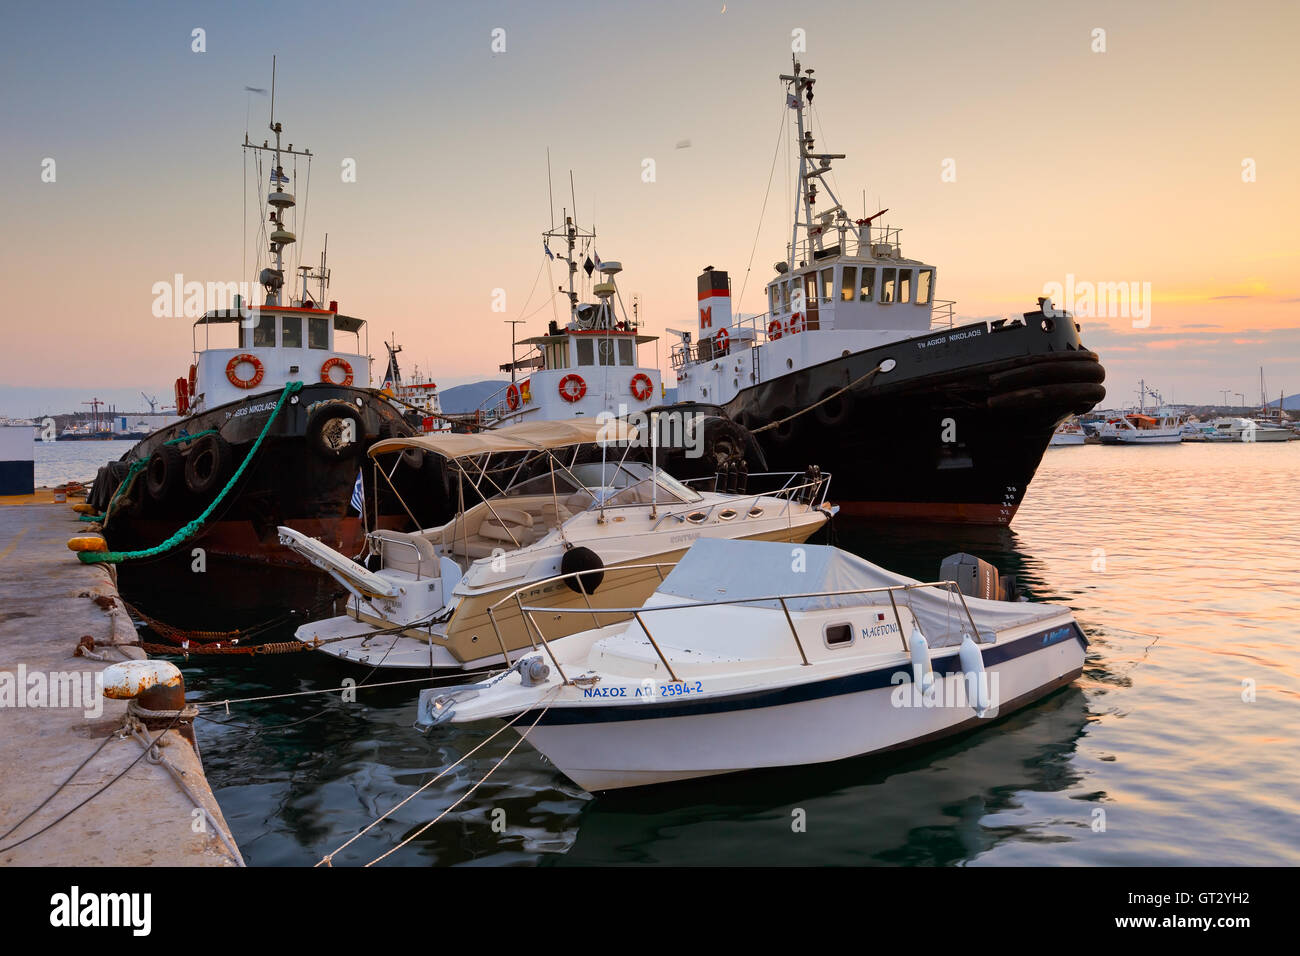 Tugs and motor boats in the port of Perama, Athens. - Stock Image